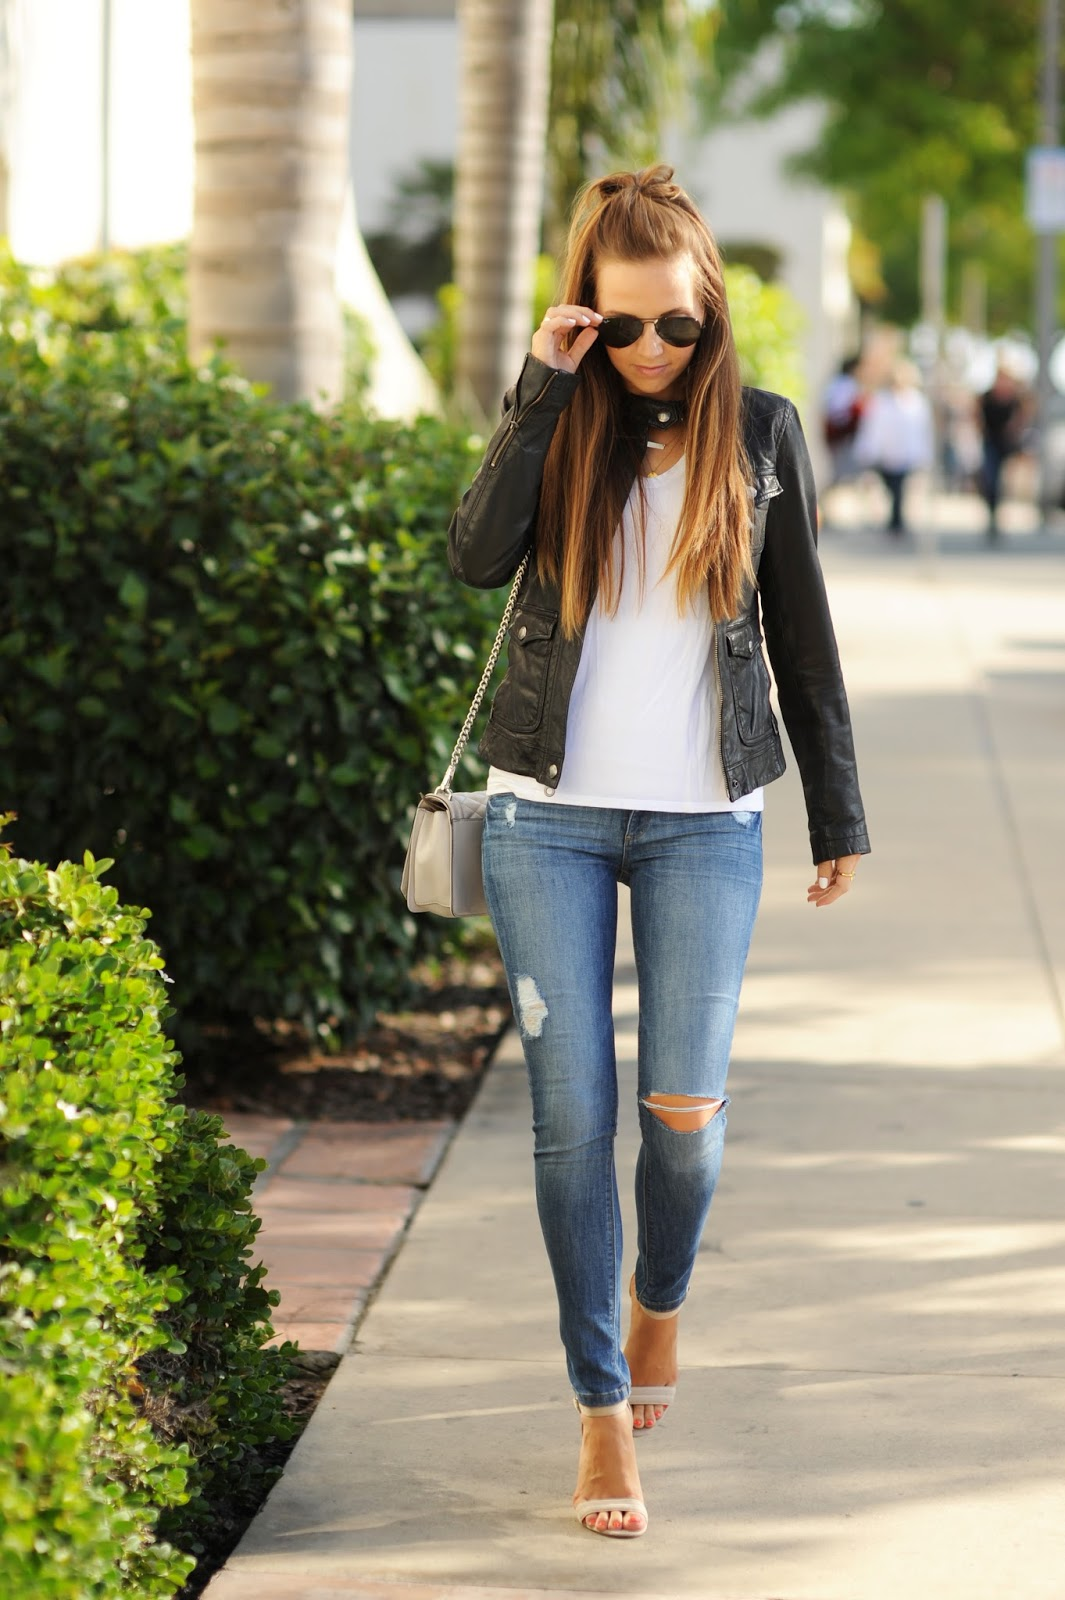 486c36834de9 Distressed skinny jeans with a plain white tee and leather jacket is the  best look for being out and about this summer. Via merricksart